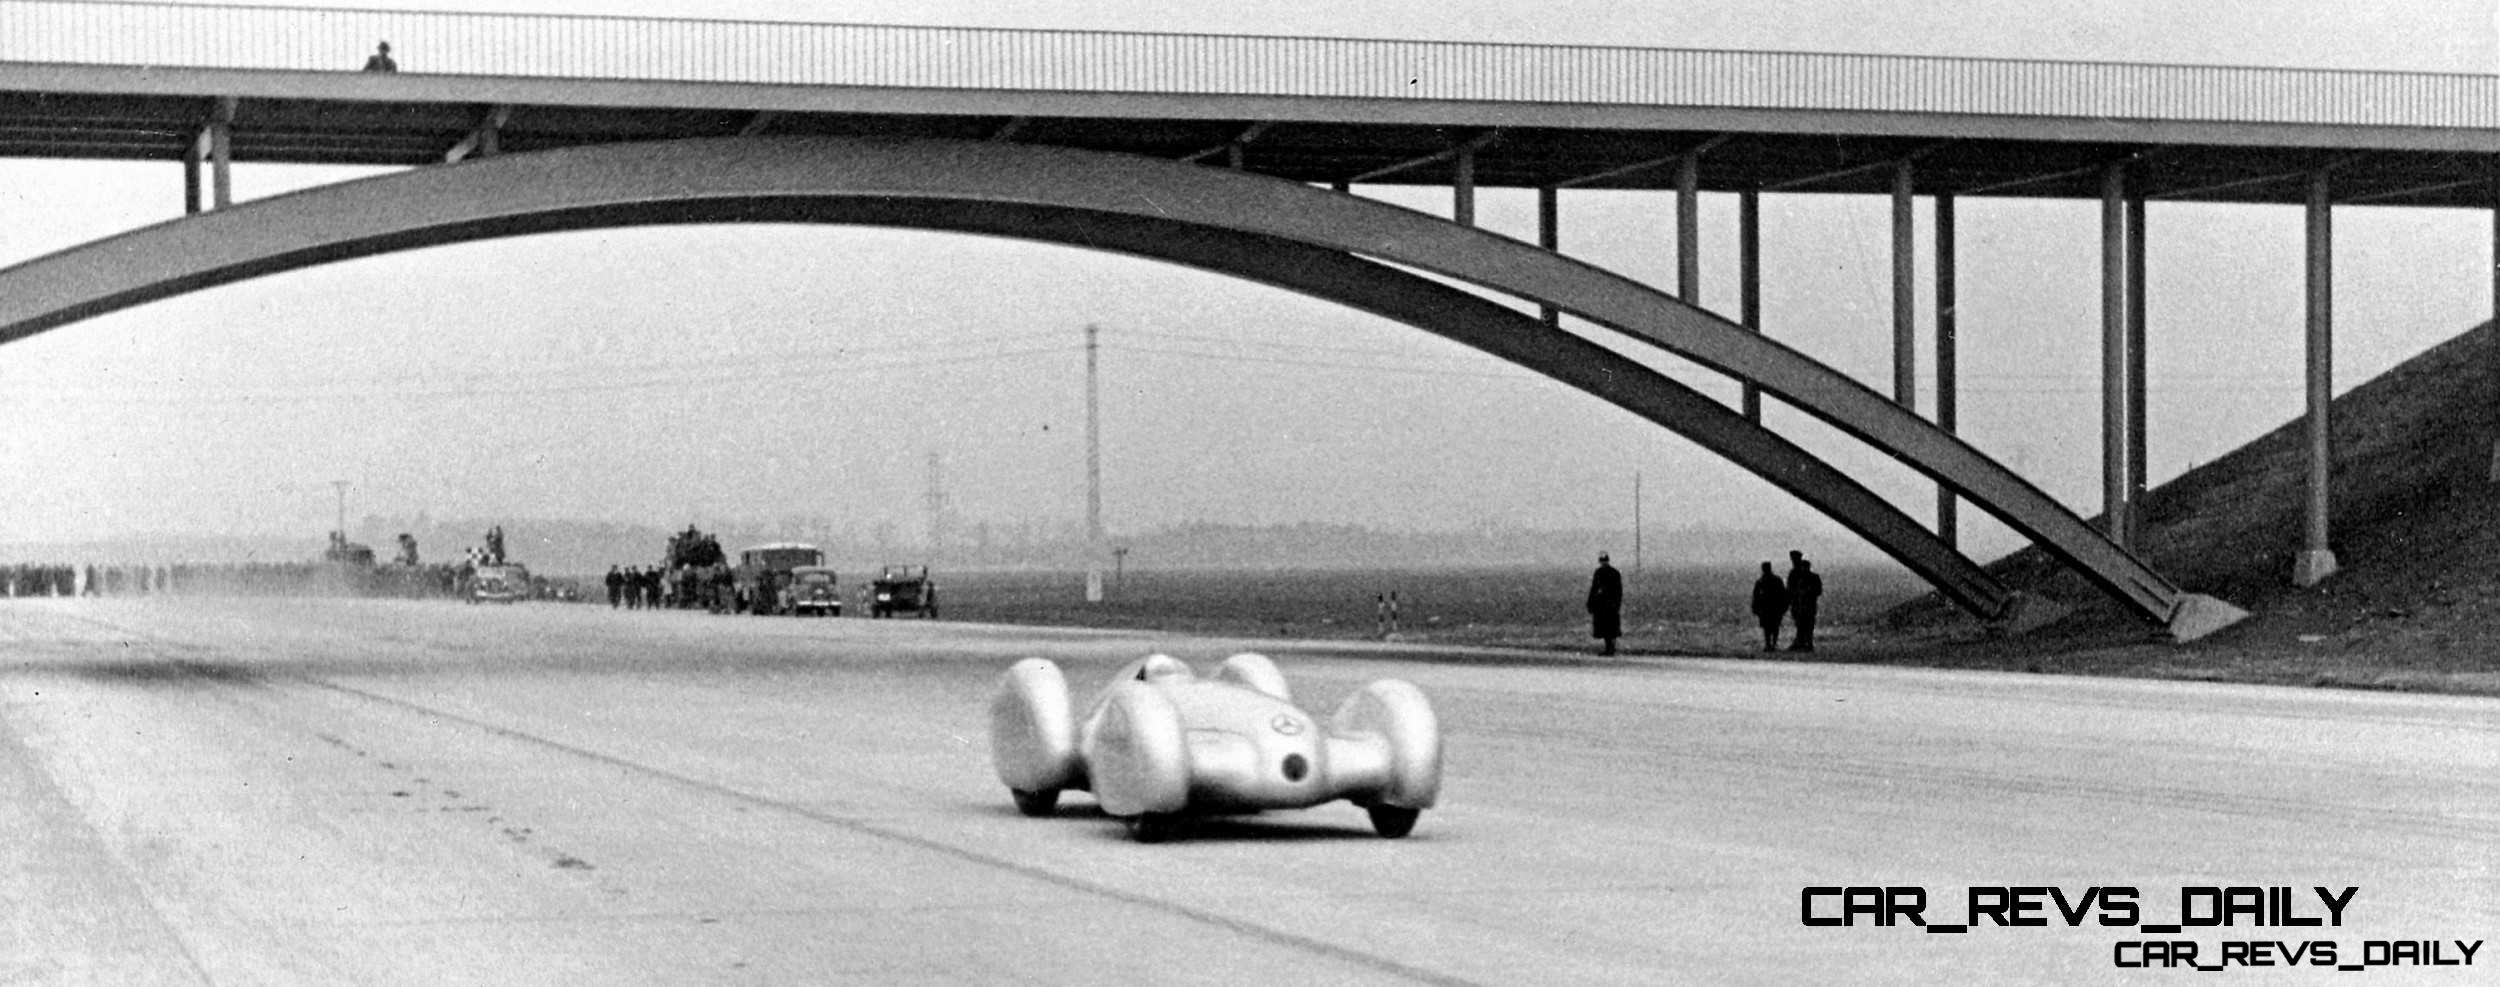 CarRevsDaily - Hour of the Silver Arrows - Action Photography 42